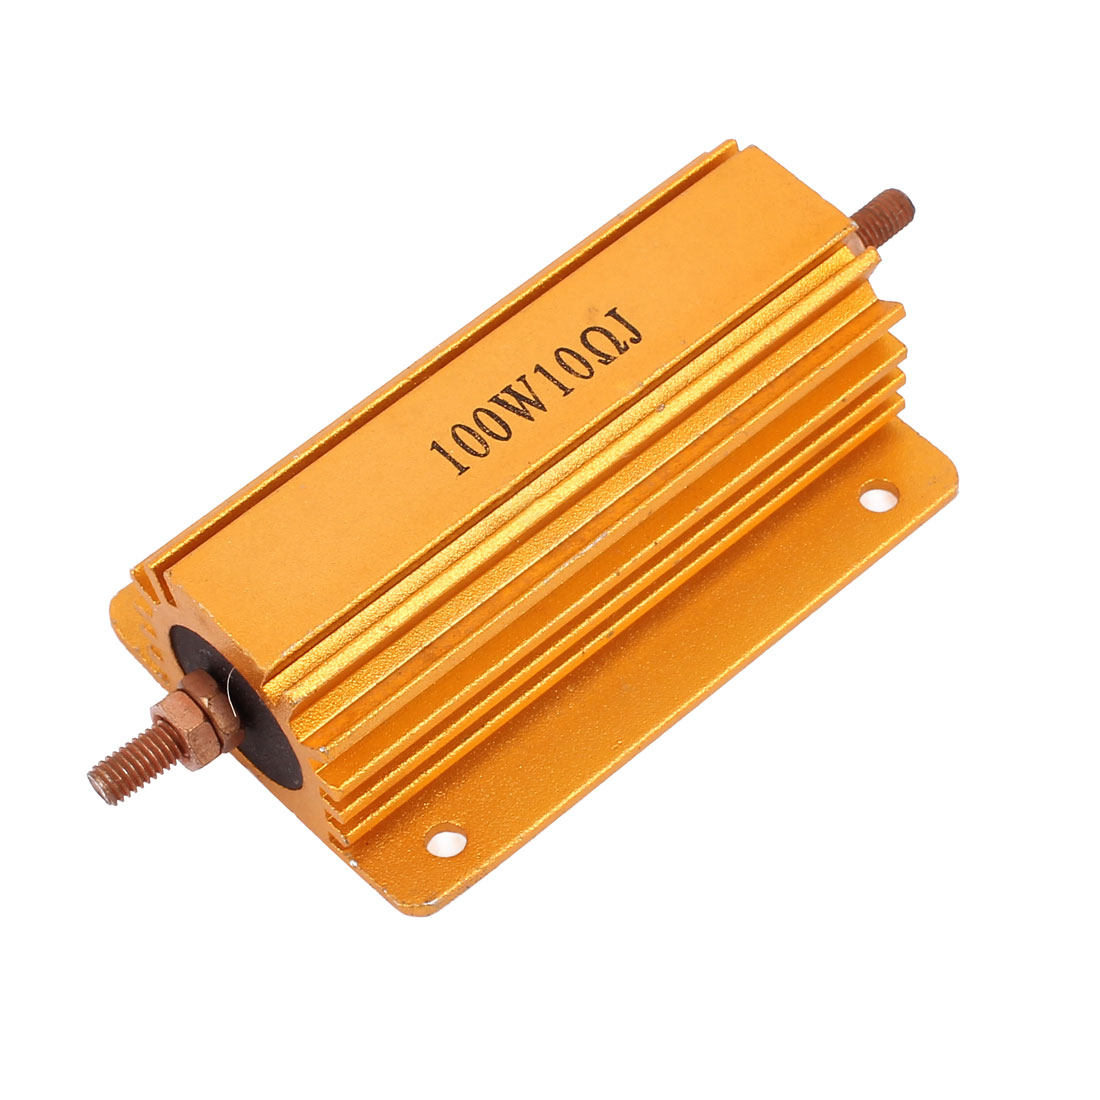 100W 10 Ohm Gold Tone Chassis Mounted Aluminum Shell Clad Resistor